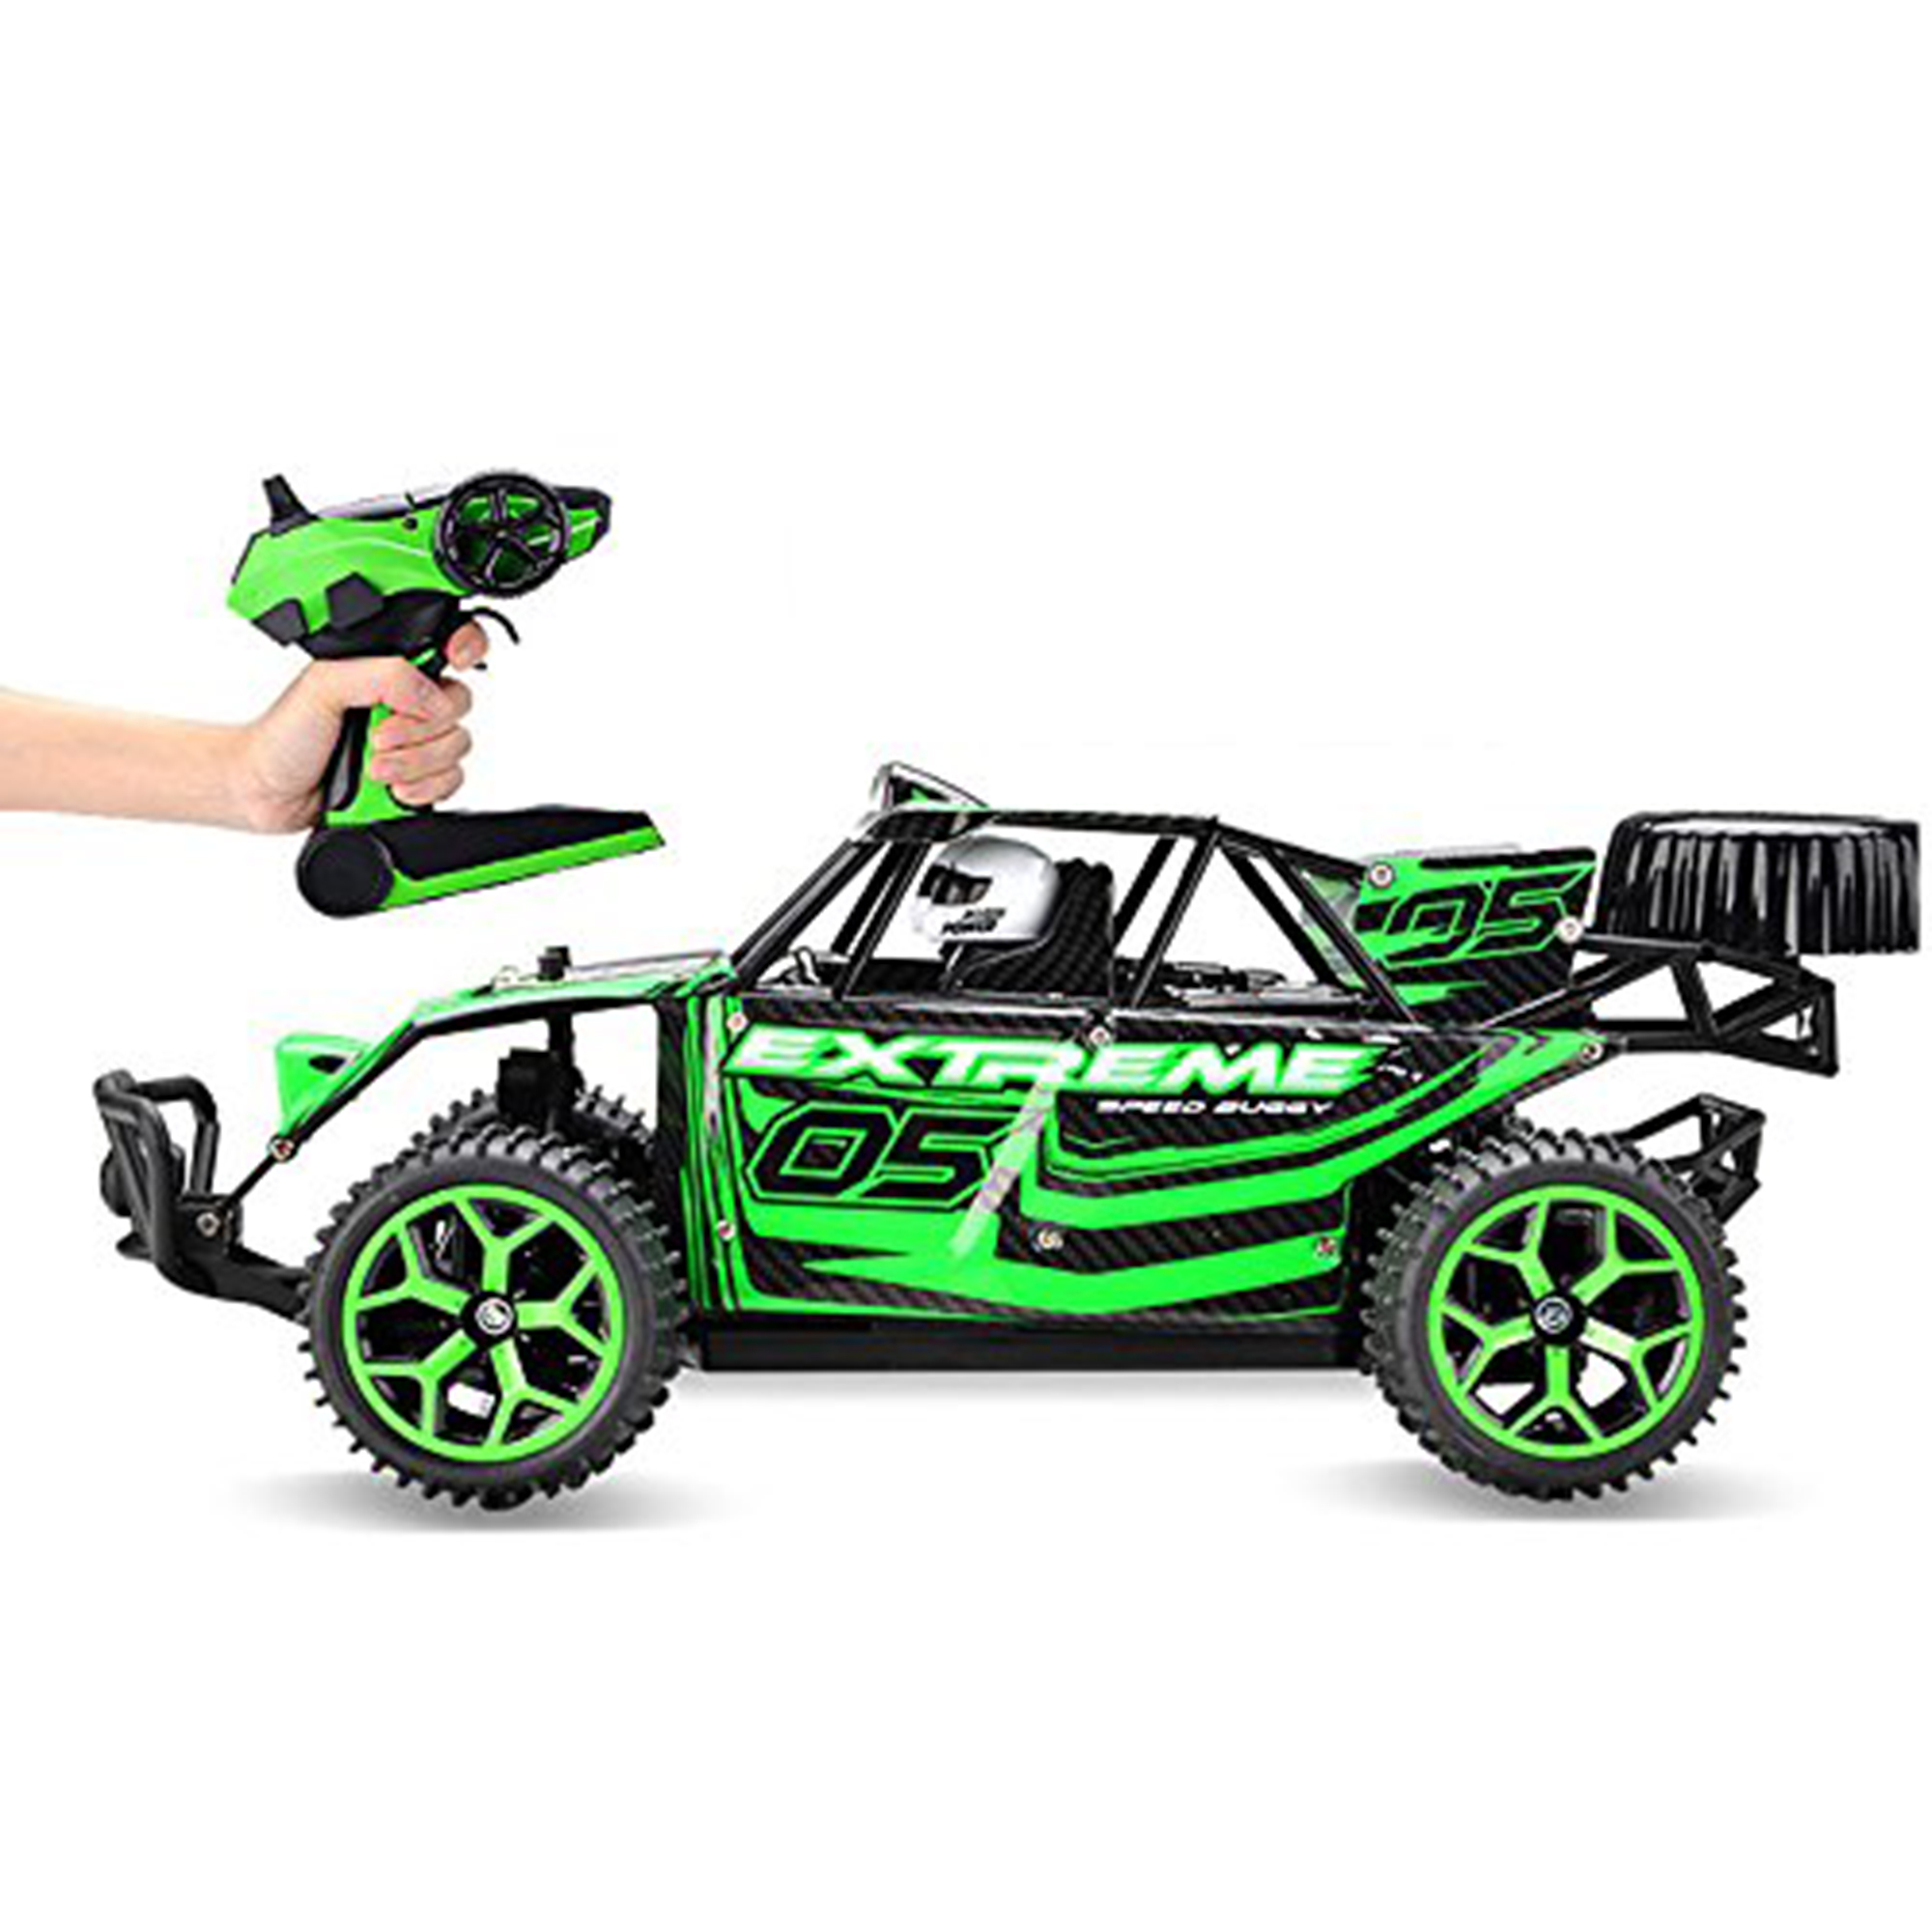 KARMAS PRODUCT 1:18 2.4G 4WD 20KM High Speed Off-Road RC Die Cast Racing CombinationCar Battery Control Vehicle Presents for Kids